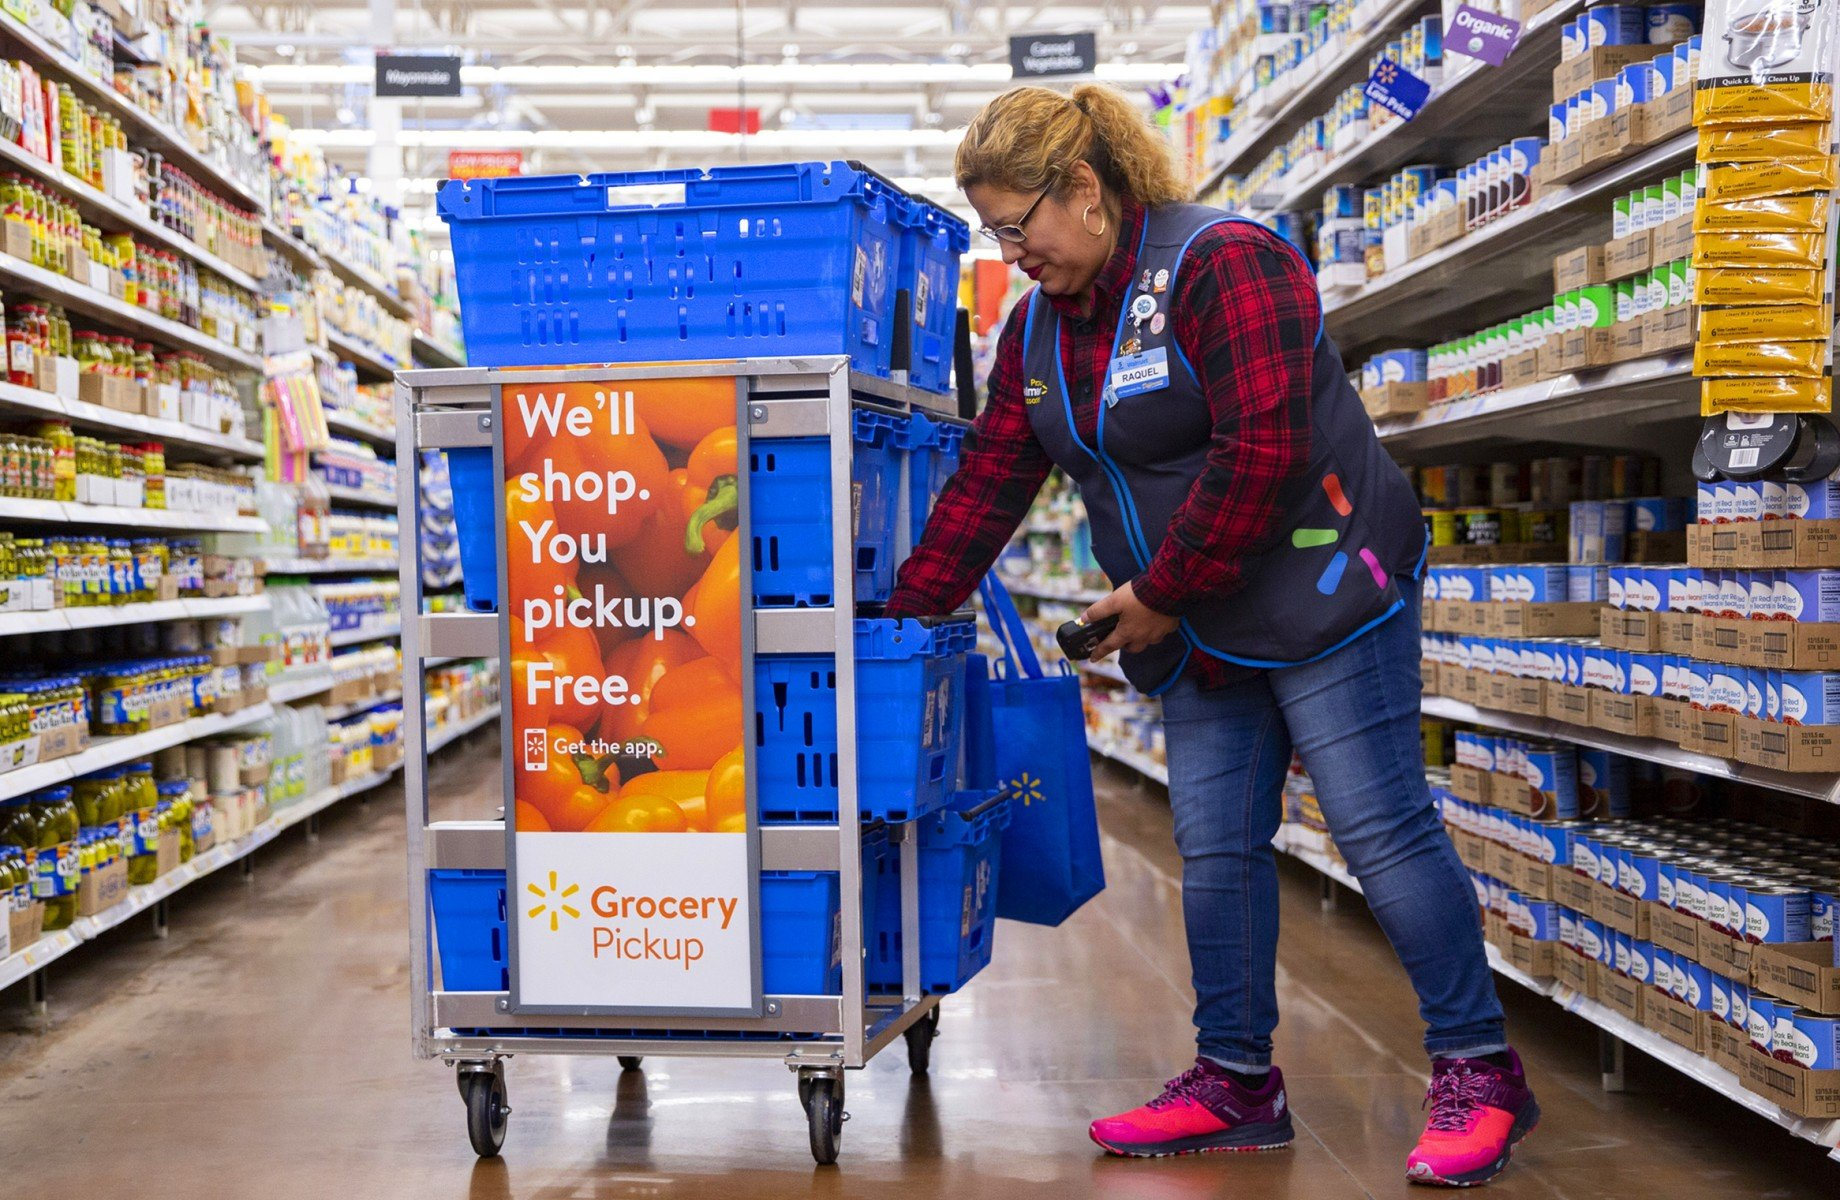 How is Walmart responding to COVID-19